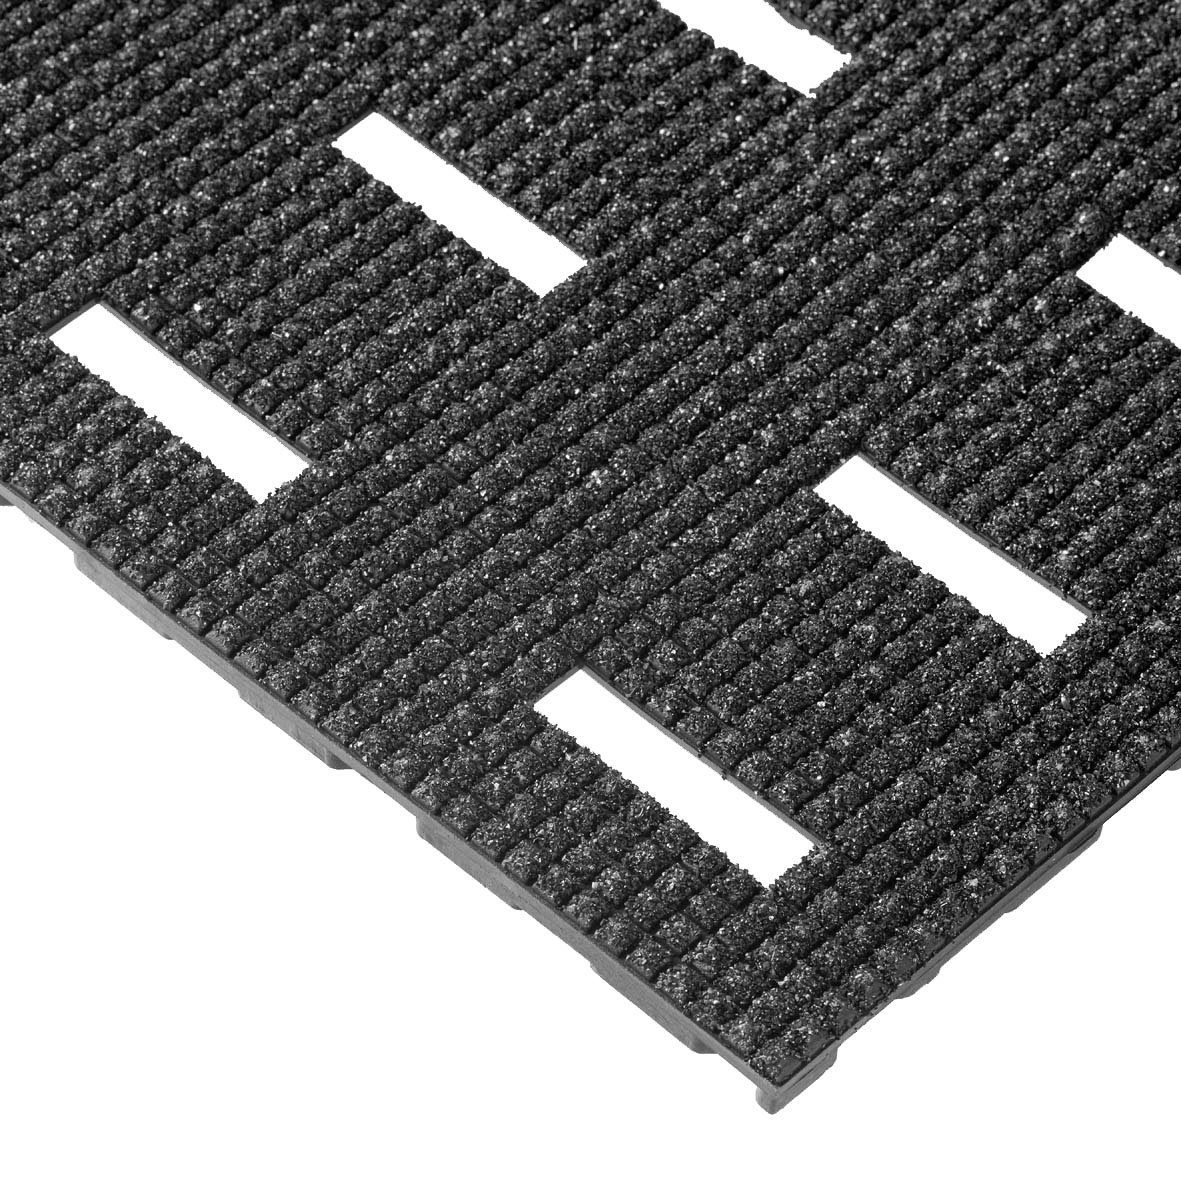 NoTrax Vinyl 422 Cushion-Dek Anti-Fatigue Drainage Mat, for Wet Areas, 2' Width x 6' Length x 7/16'' Thickness, Black